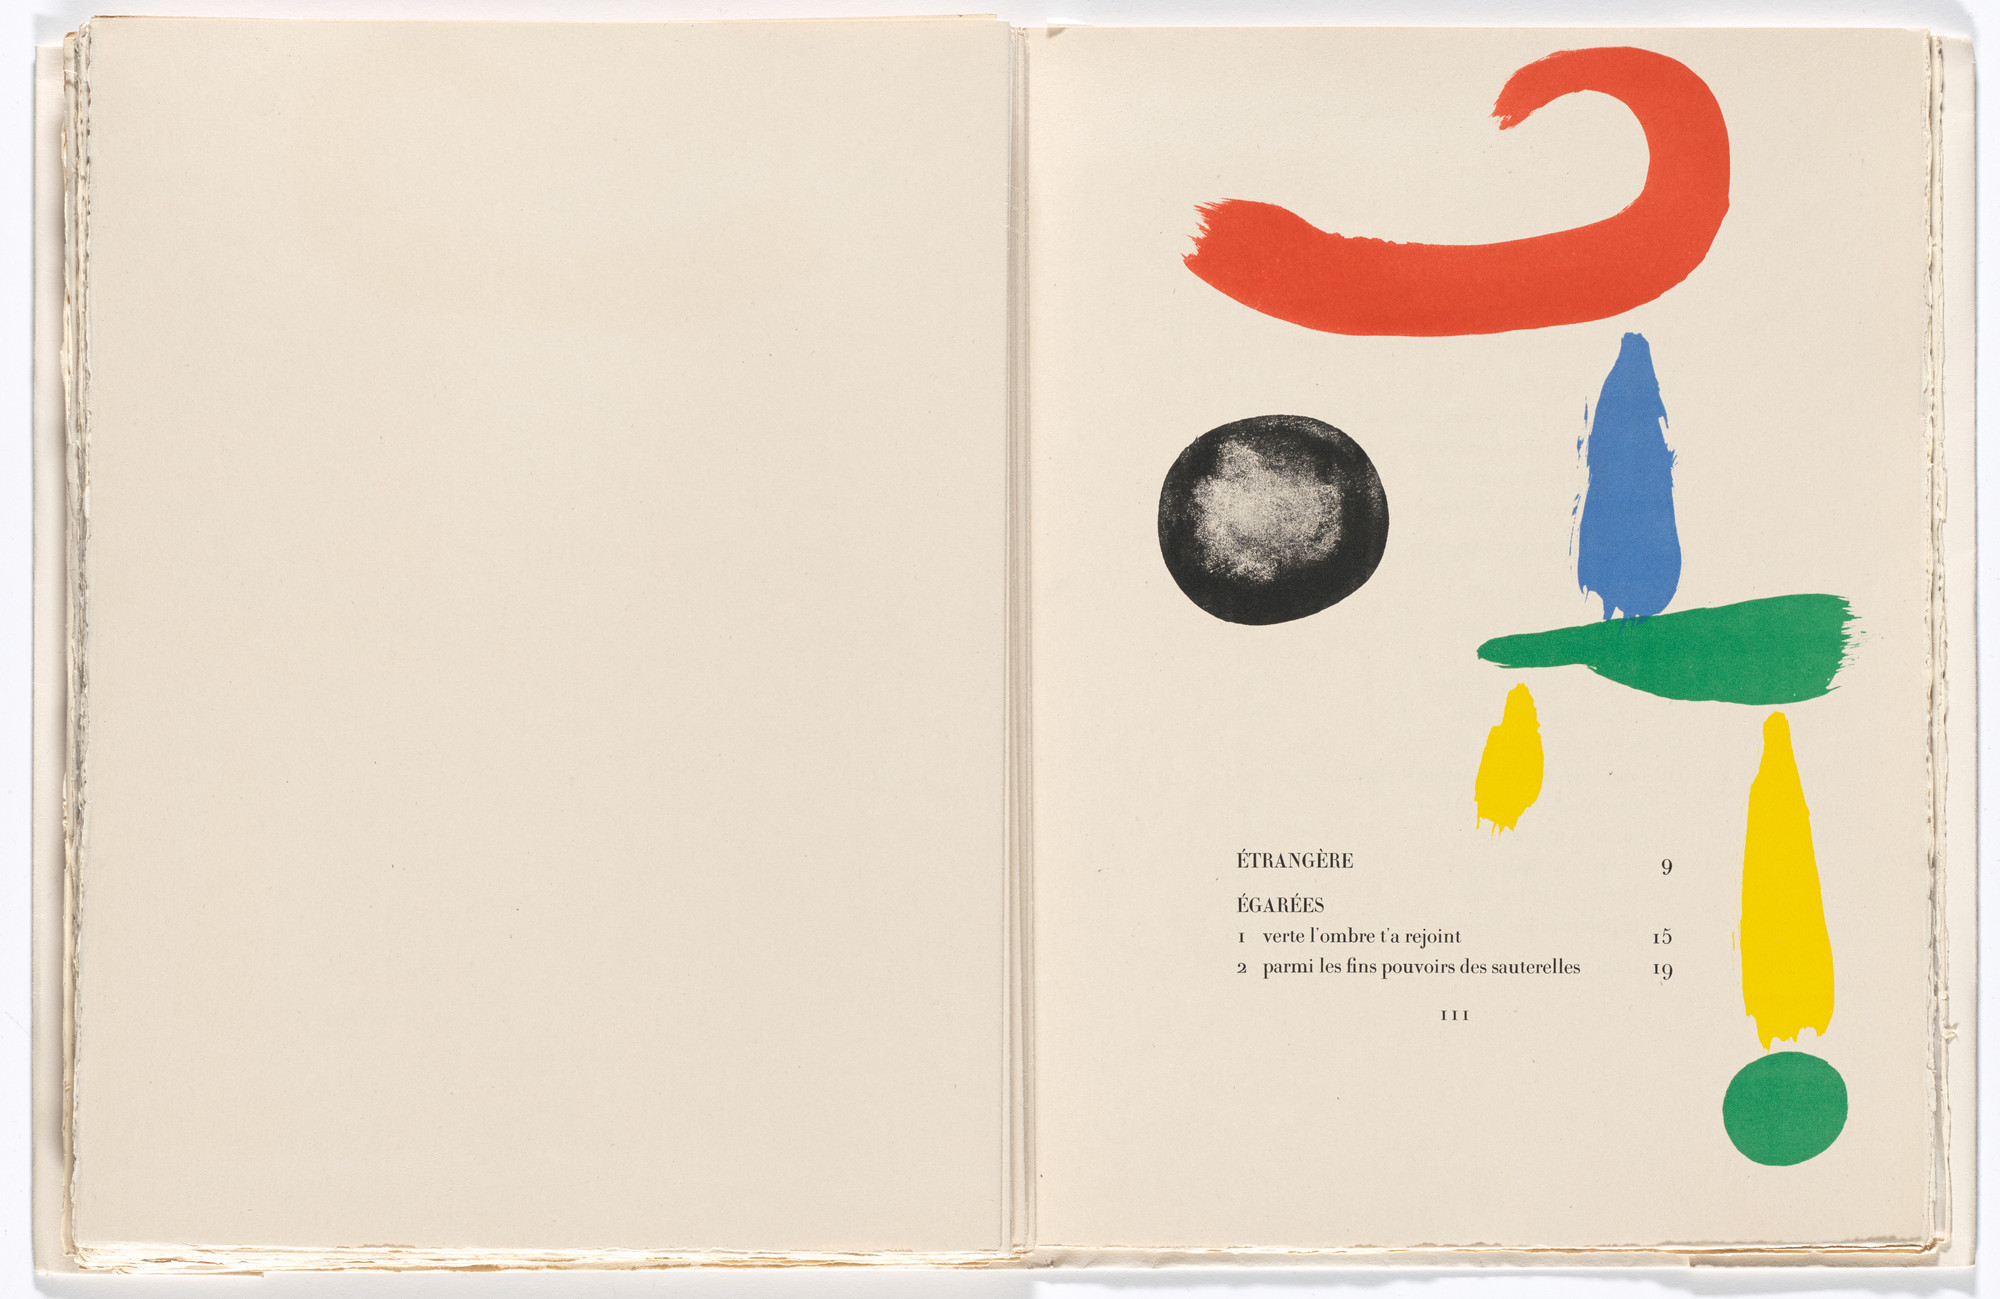 Joan Miró. Headpiece (page 111) from Parler seul (Speaking Alone). 1948–50, published 1950